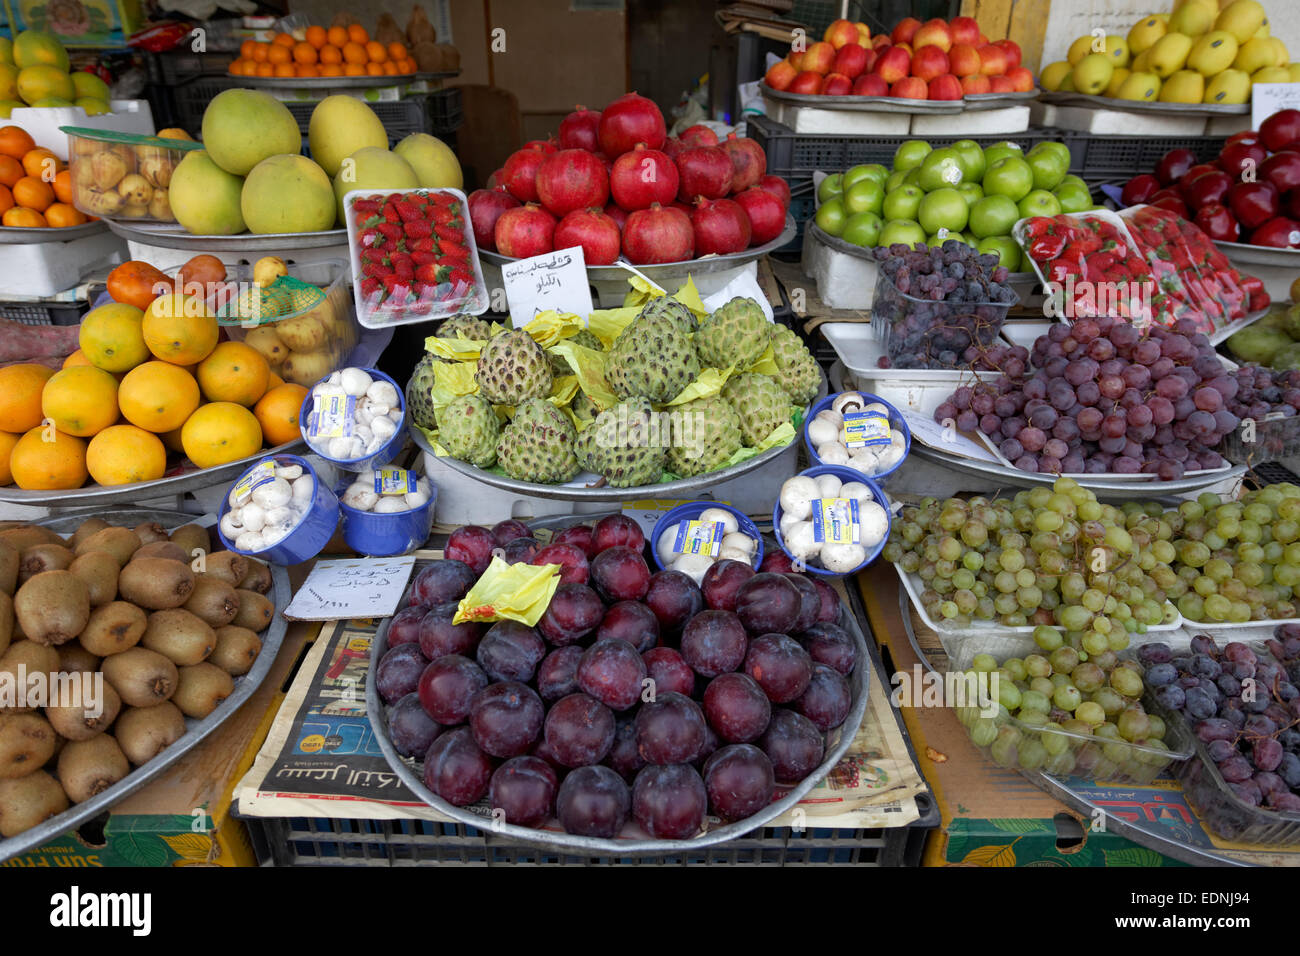 e94af614585bd7 Fruit stall in the fruit market